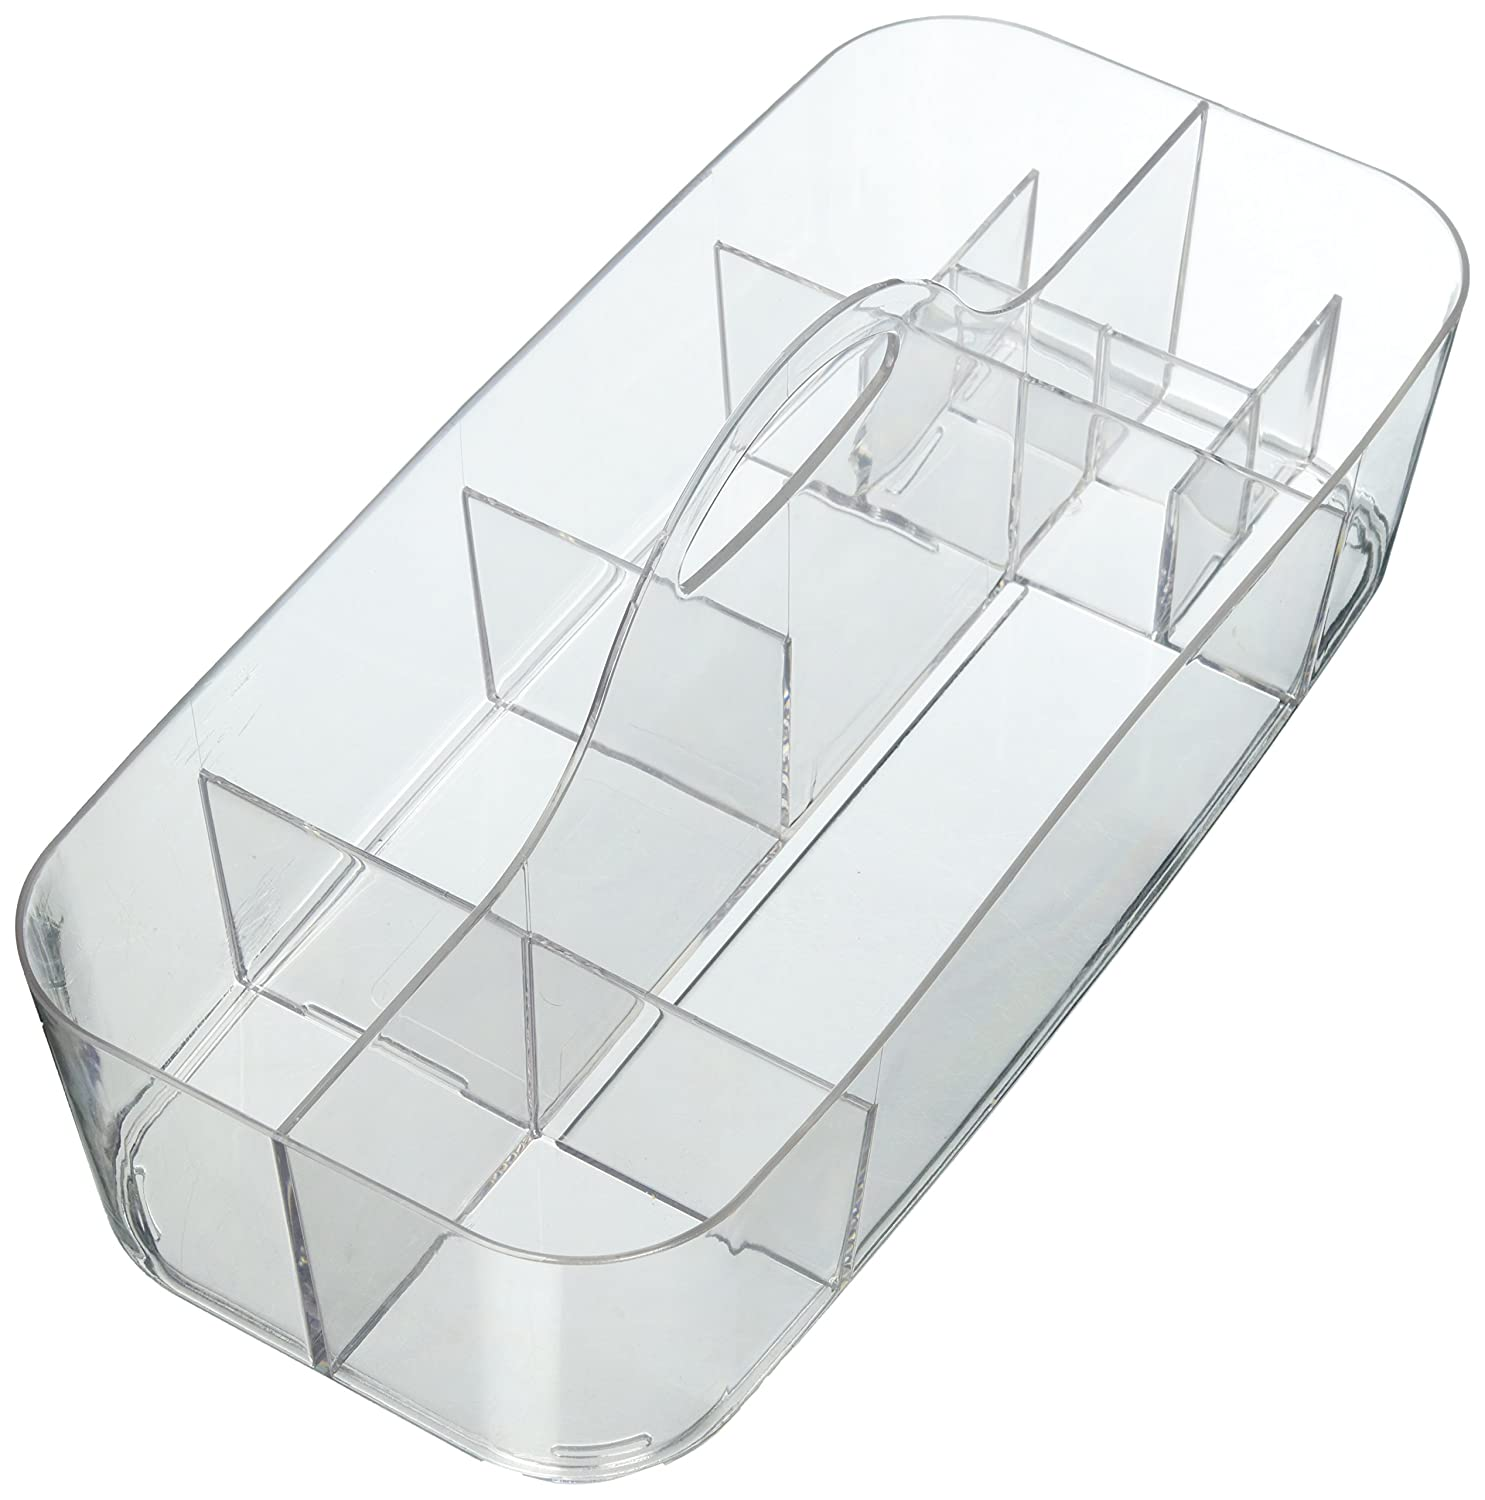 mDesign Bathroom Shower Caddy Tote for Shampoo, Soap, Razors - Large, Clear MetroDecor